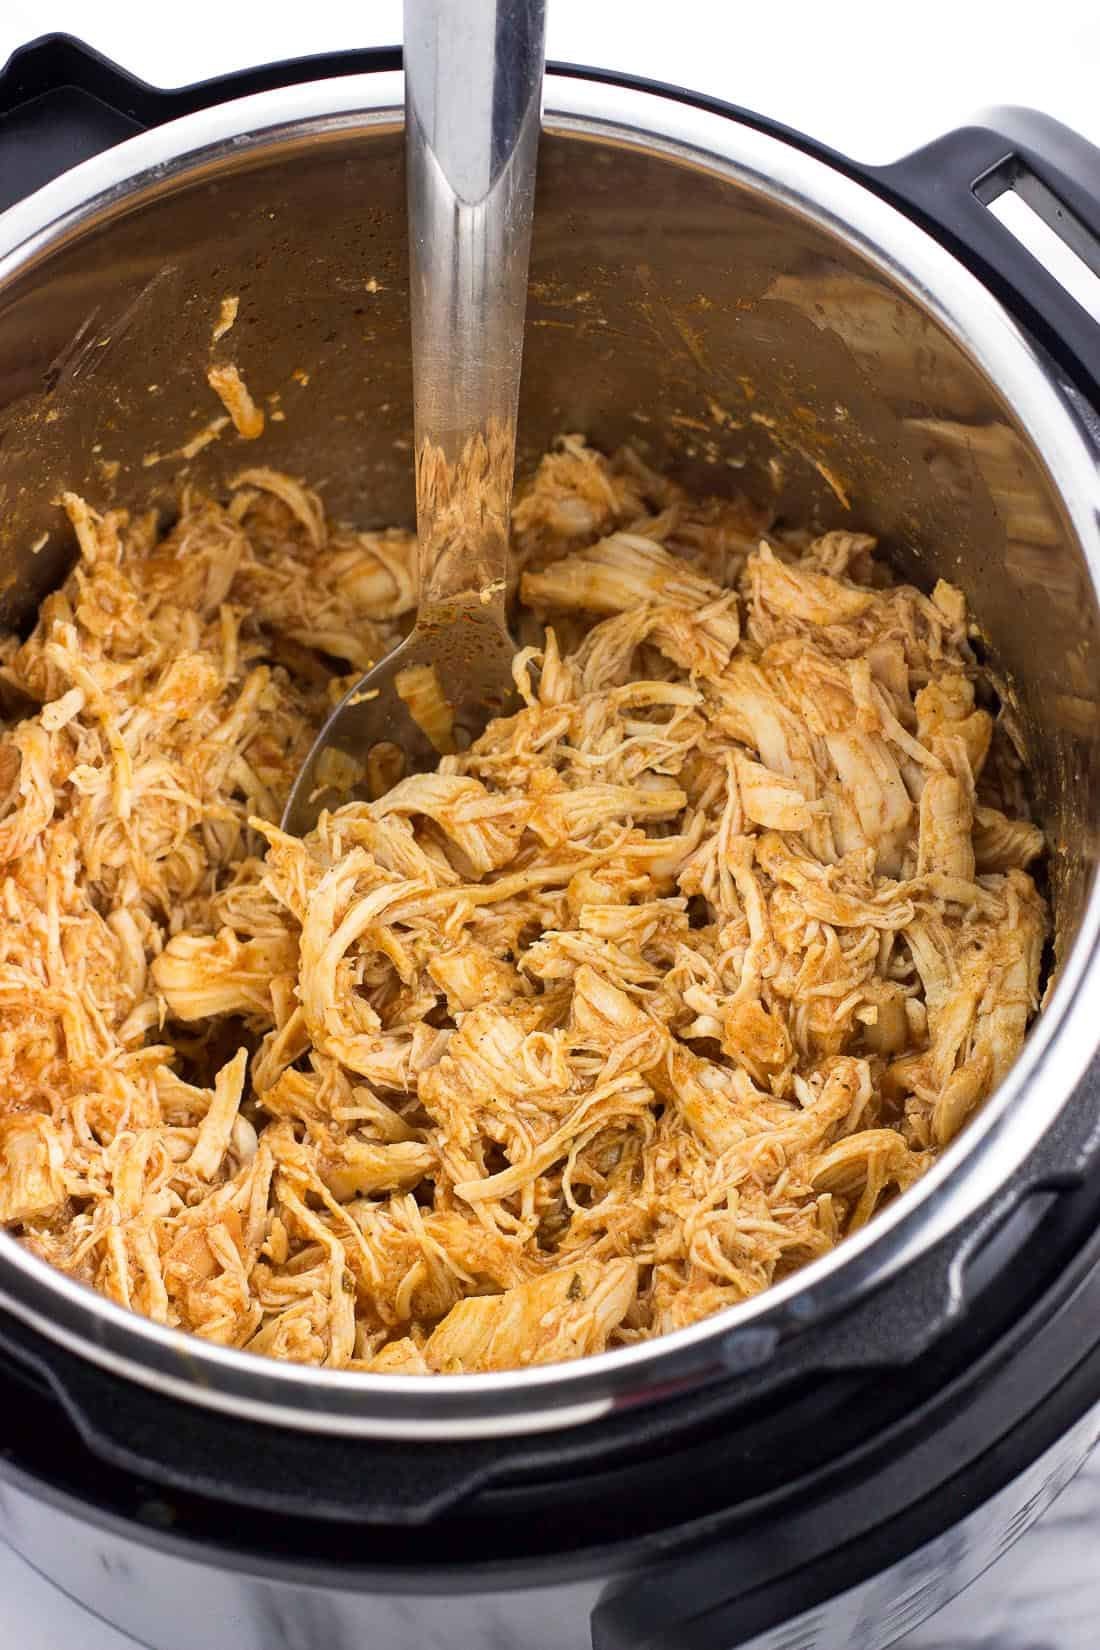 Instant Pot buffalo chicken is an easy and healthy dinner that can be served so many different ways. Just add everything to the Instant Pot and cook! This makes a great meal prep recipe.